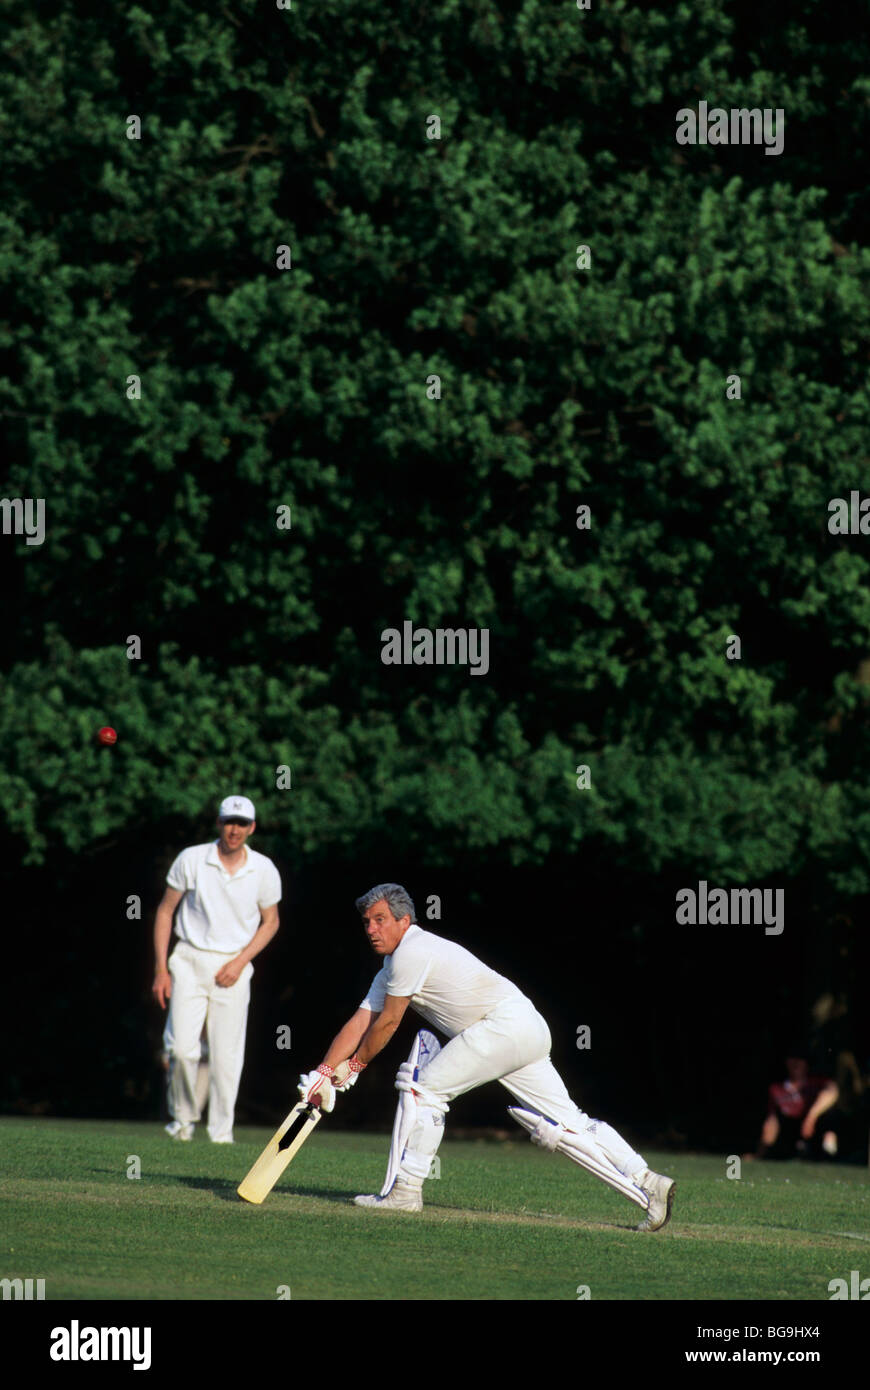 Cricket batsman about to strike the ball - Stock Image